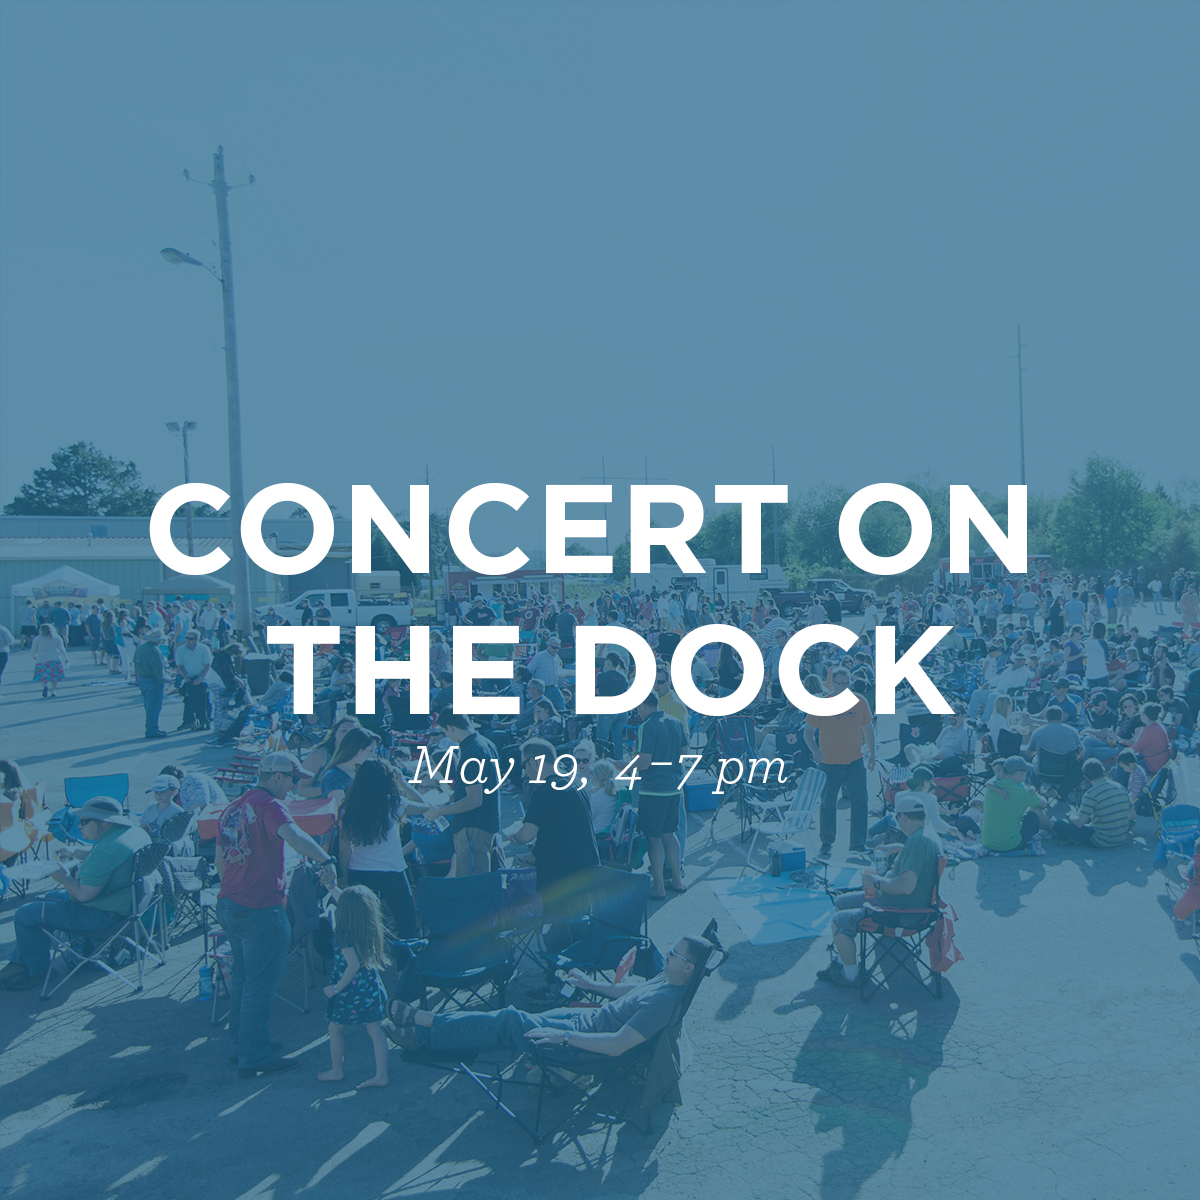 Concert On The Dock